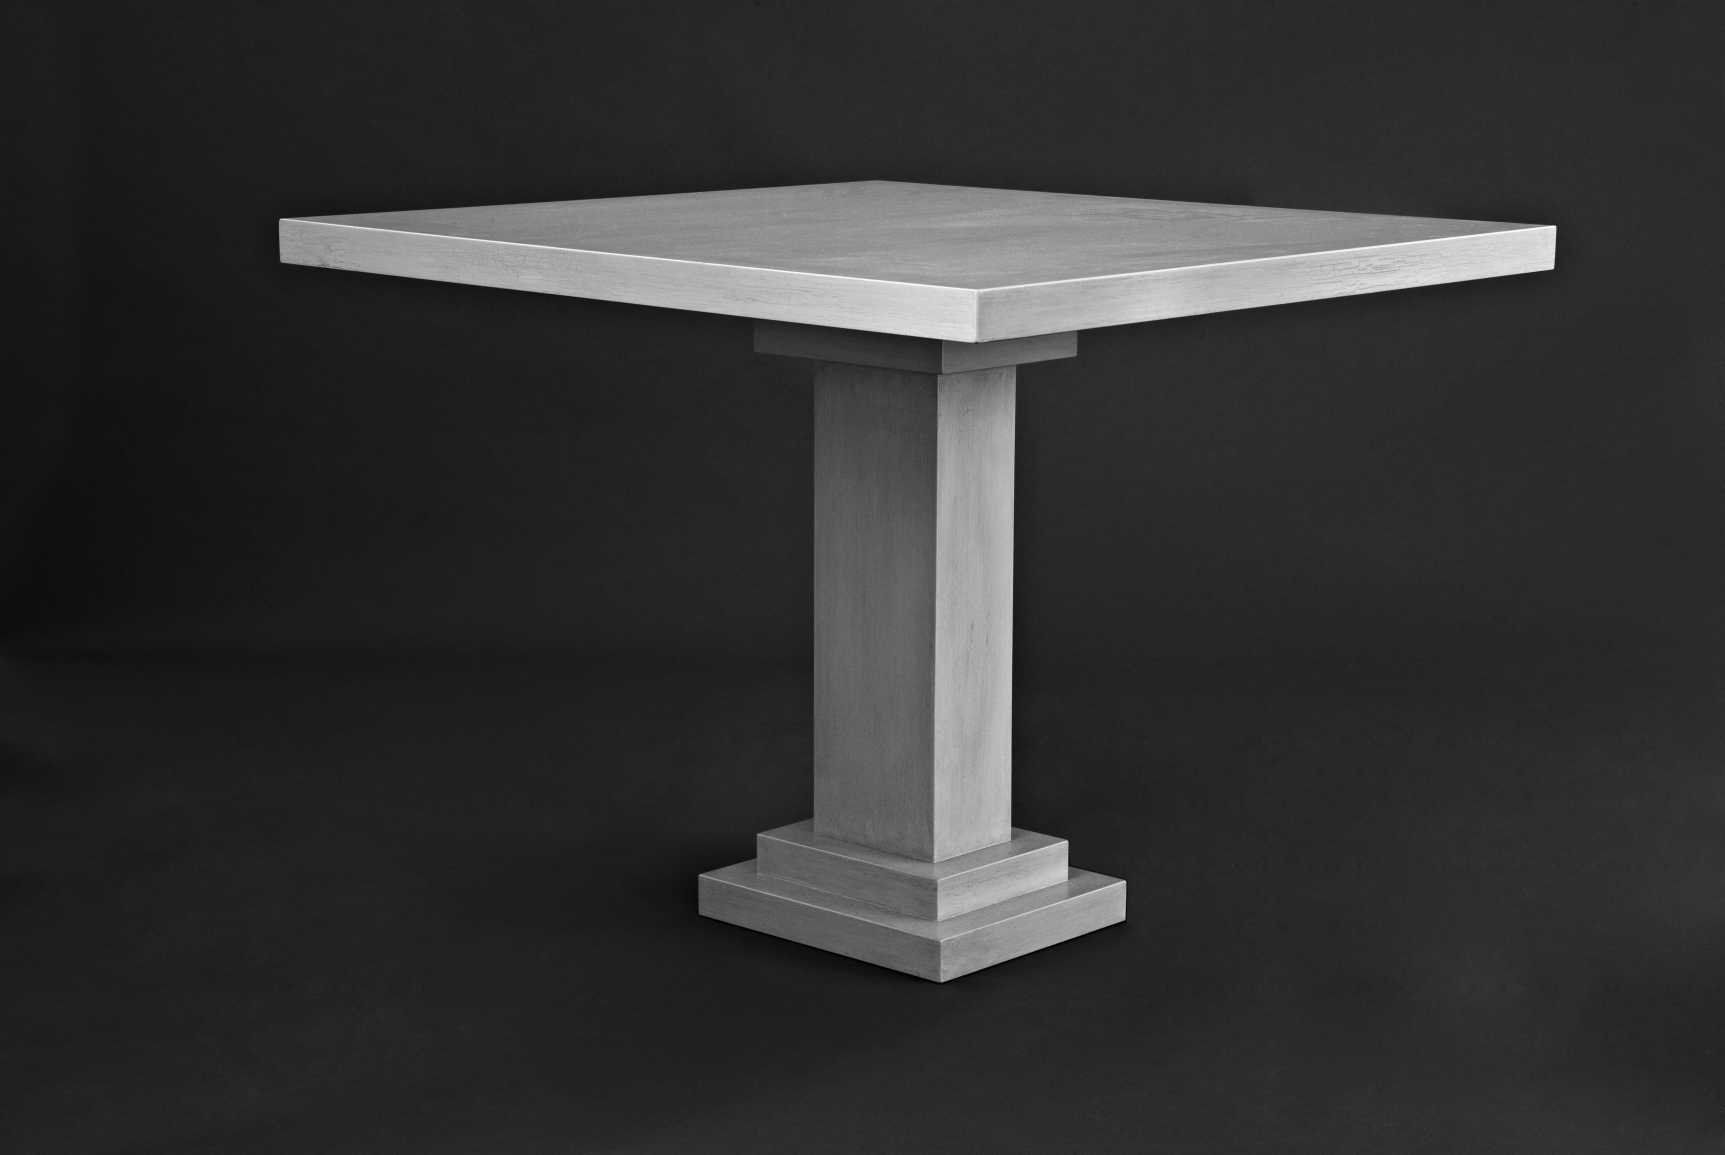 Single pedestal table finished in a lacquered crackle distemper